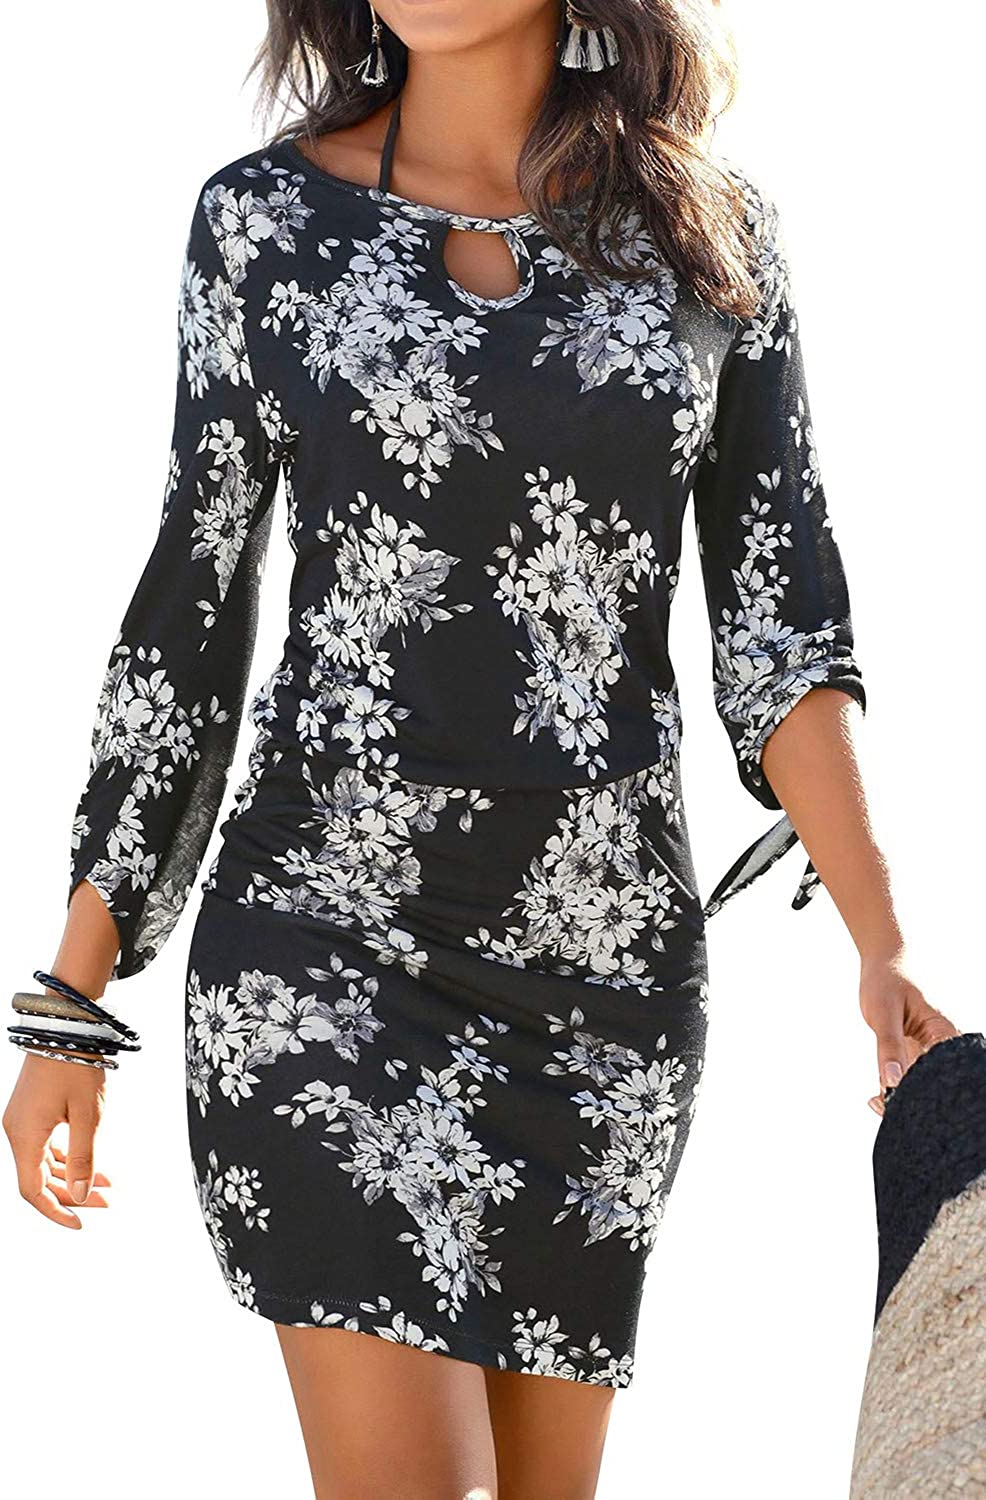 Goodday Women Lace up Sleeve Cut Out Crew Neck Floral Print Bodycon Pencil Dress